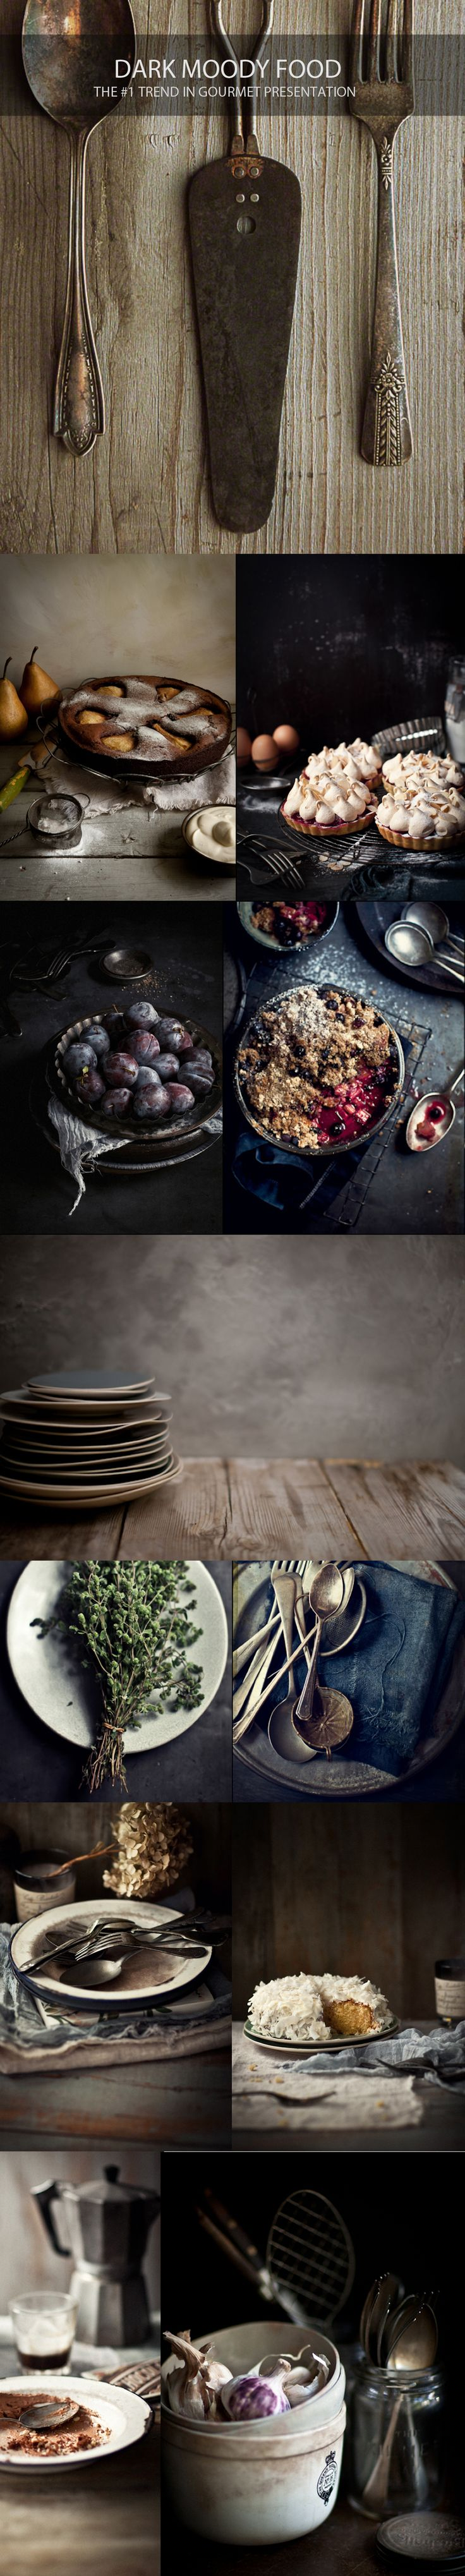 Katie Quinn Davies I Dark Moody Food Photography I PUREfourhundred Feature